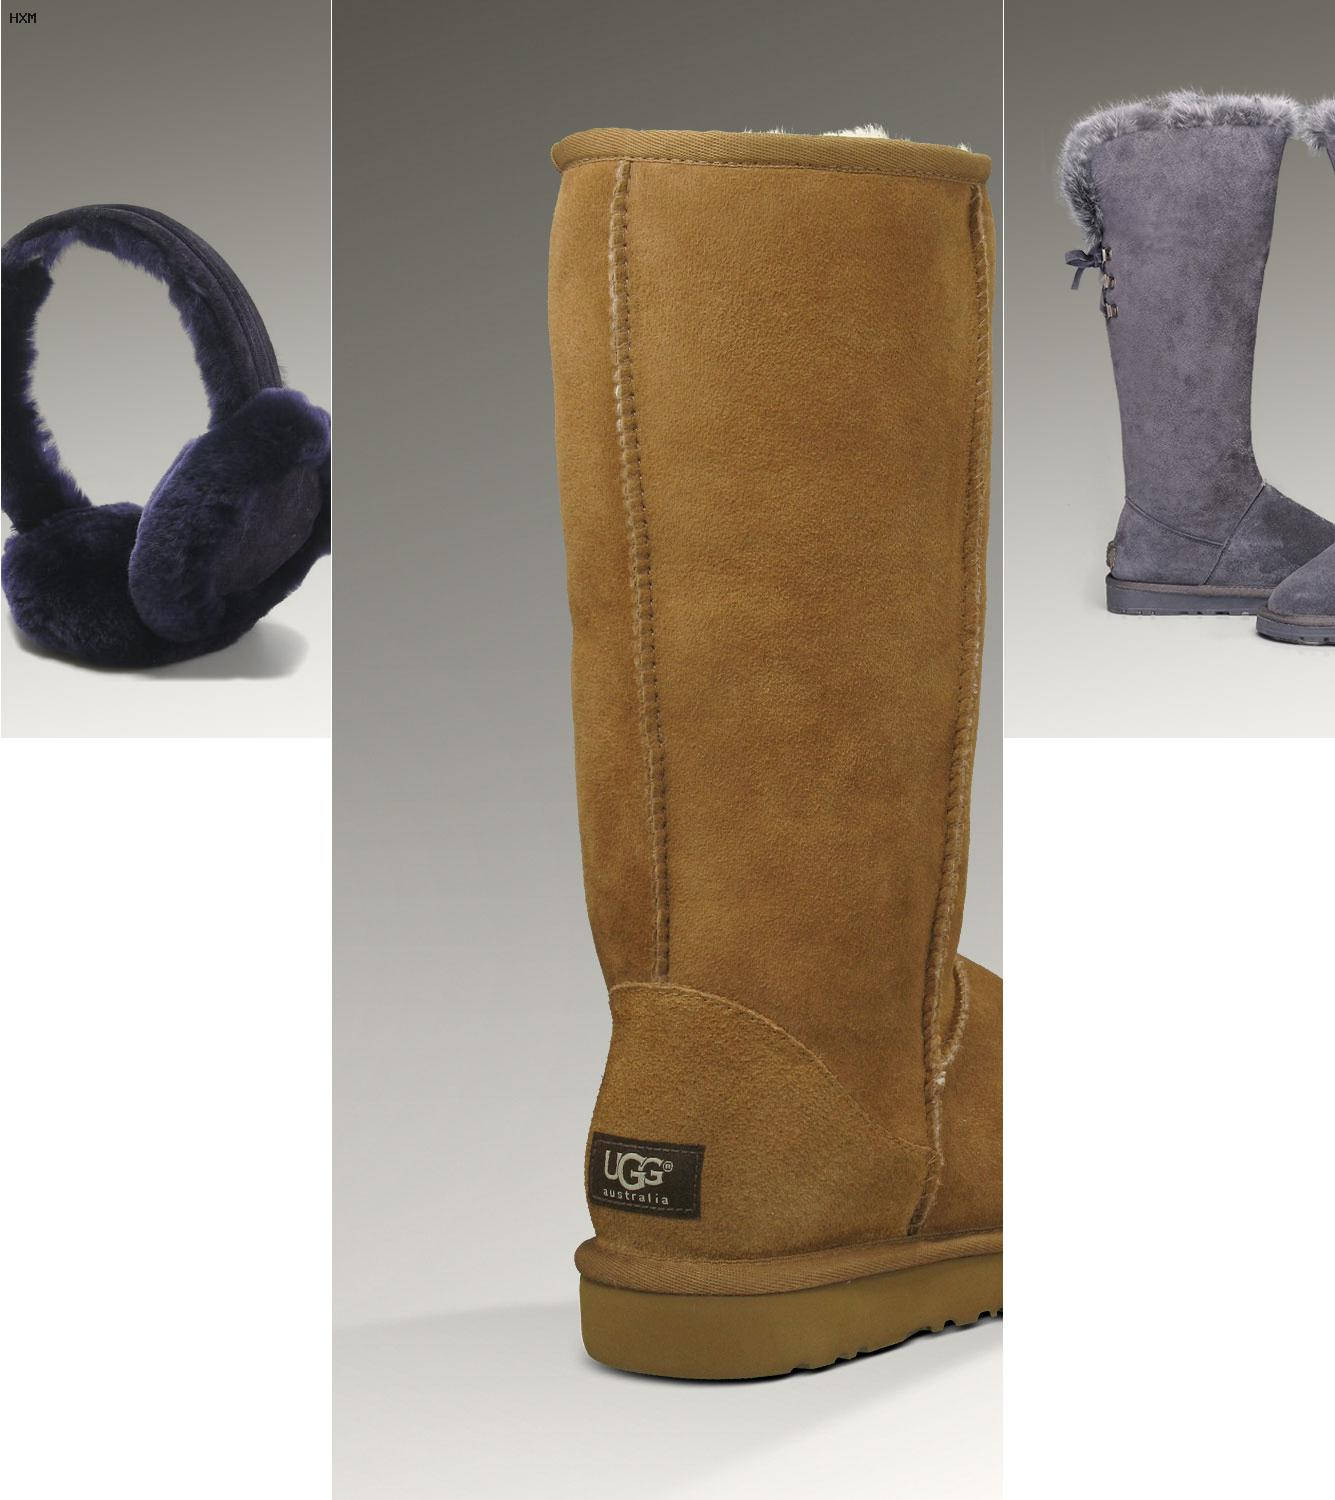 ugg luxe boots